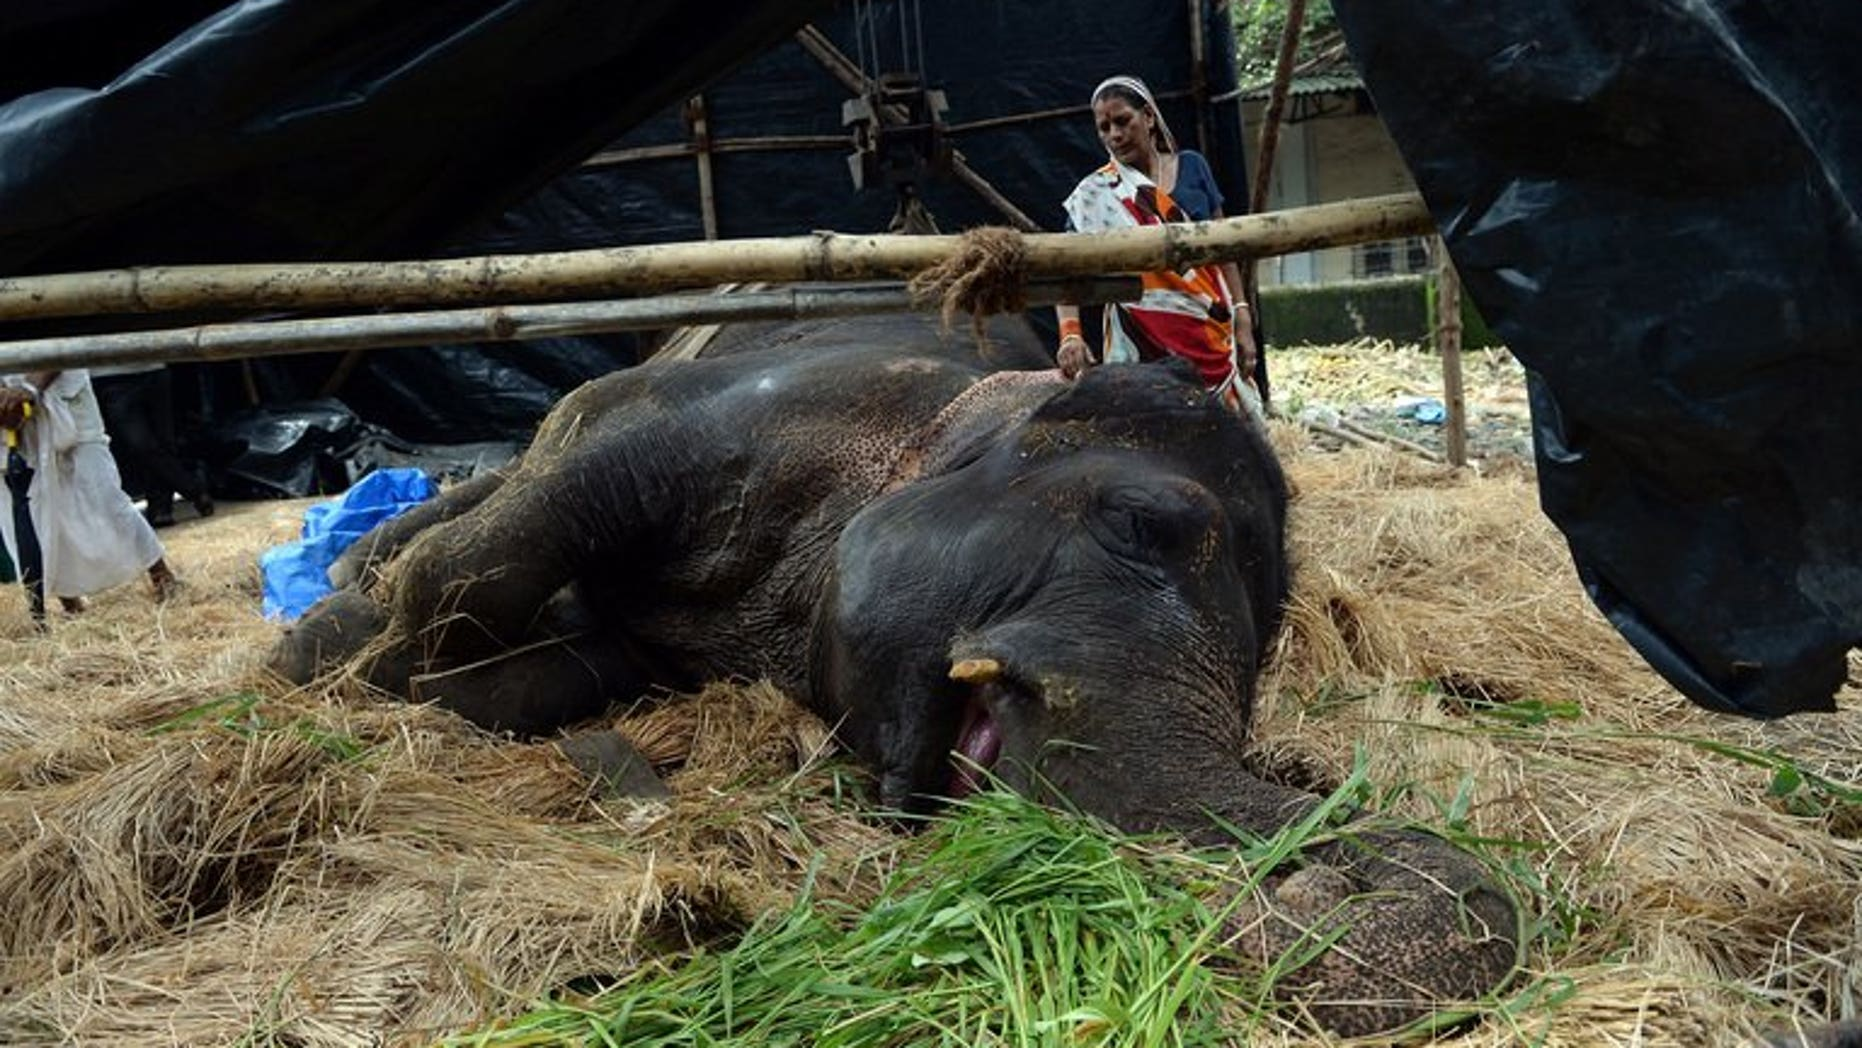 An Indian volunteer helps take care of Bijlee, an elephant in Mumbai on June 19, 2013. An overworked and overweight Indian elephant called Bijlee is fighting for her life in Mumbai after collapsing in the street, sparking anguish among animal activists and Bollywood stars.